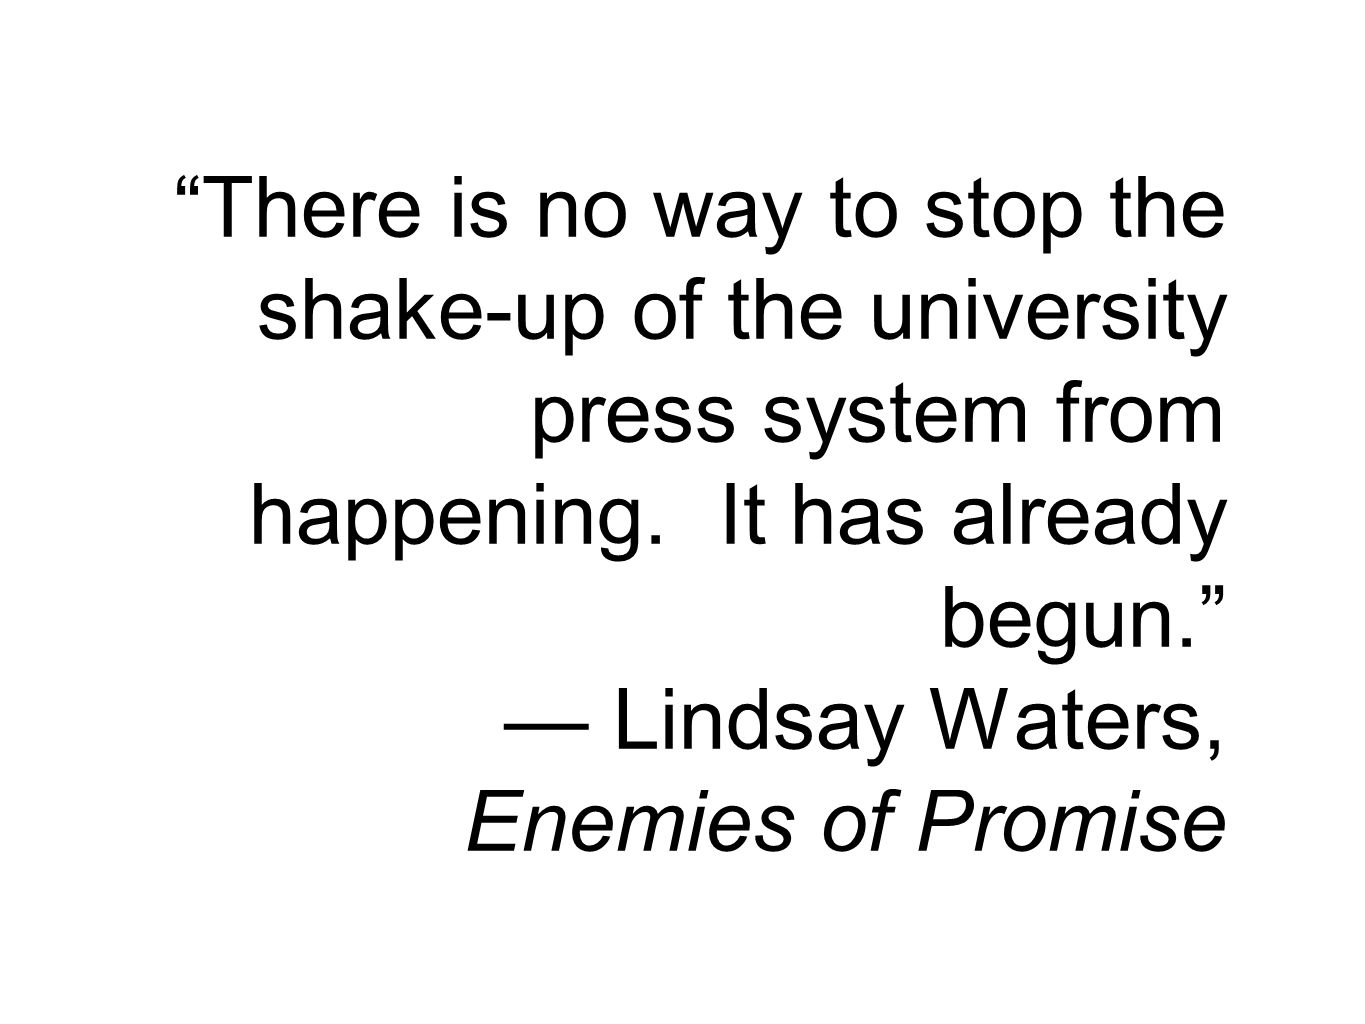 There is no way to stop the shake-up of the university press system from happening.